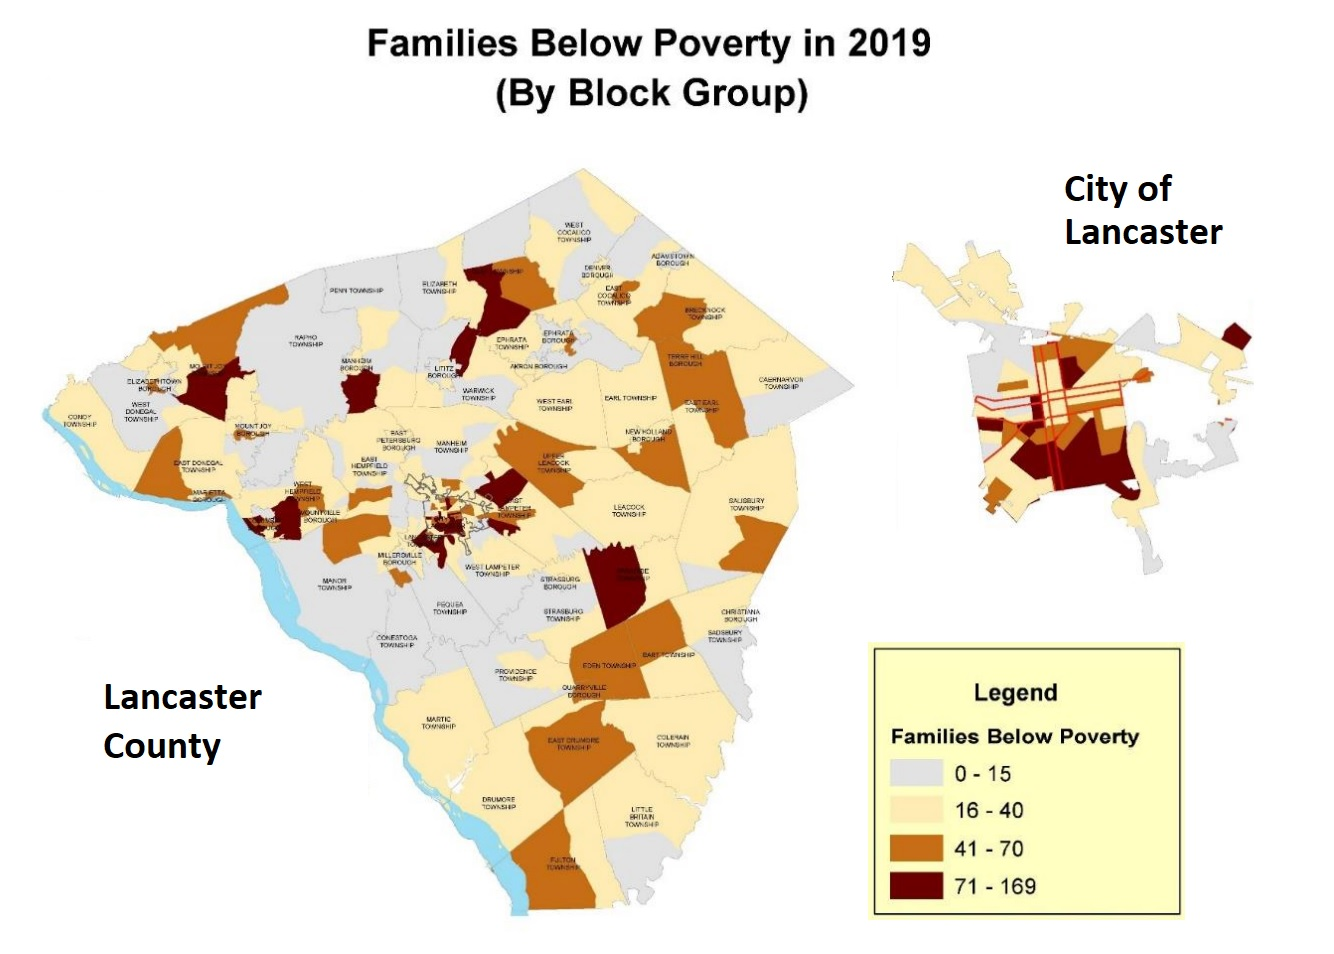 """(Source: Adapted from """"2021 Analysis of Impediments to Fair Housing Choice,"""" City of Lancaster 